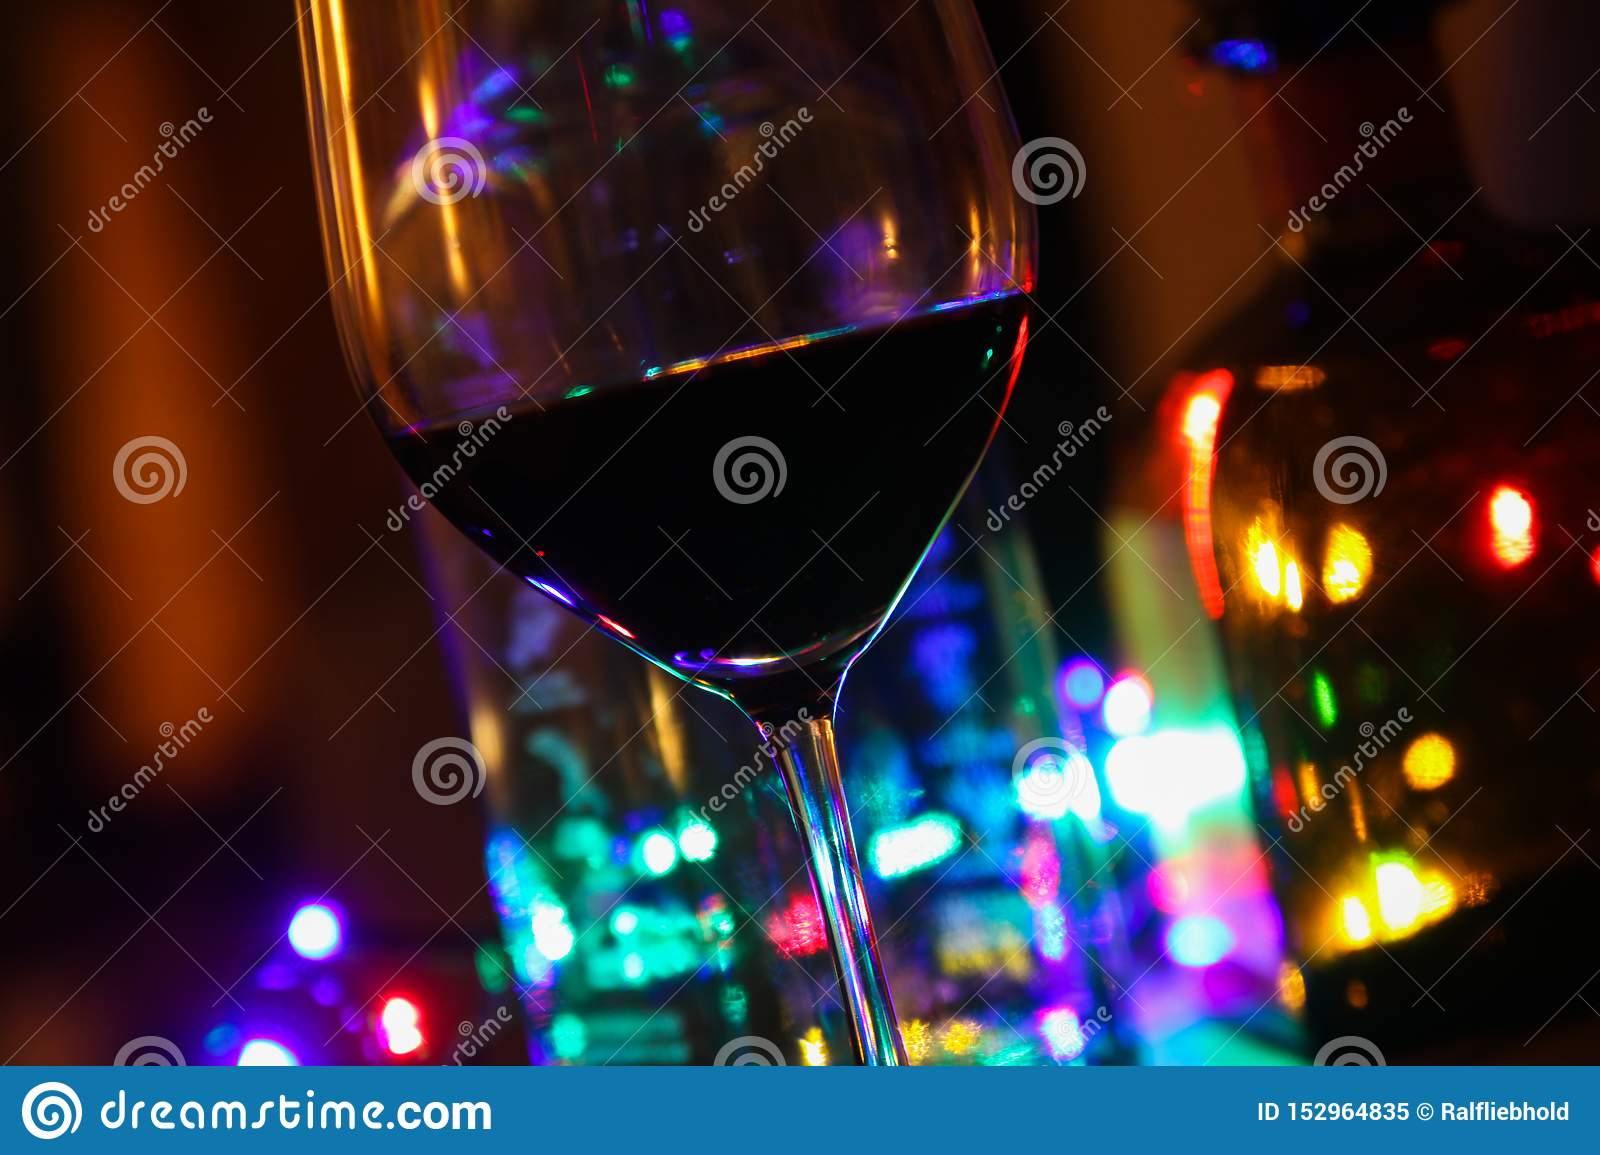 Close up of red wine glass with bottles of alcohol and colorful electric light